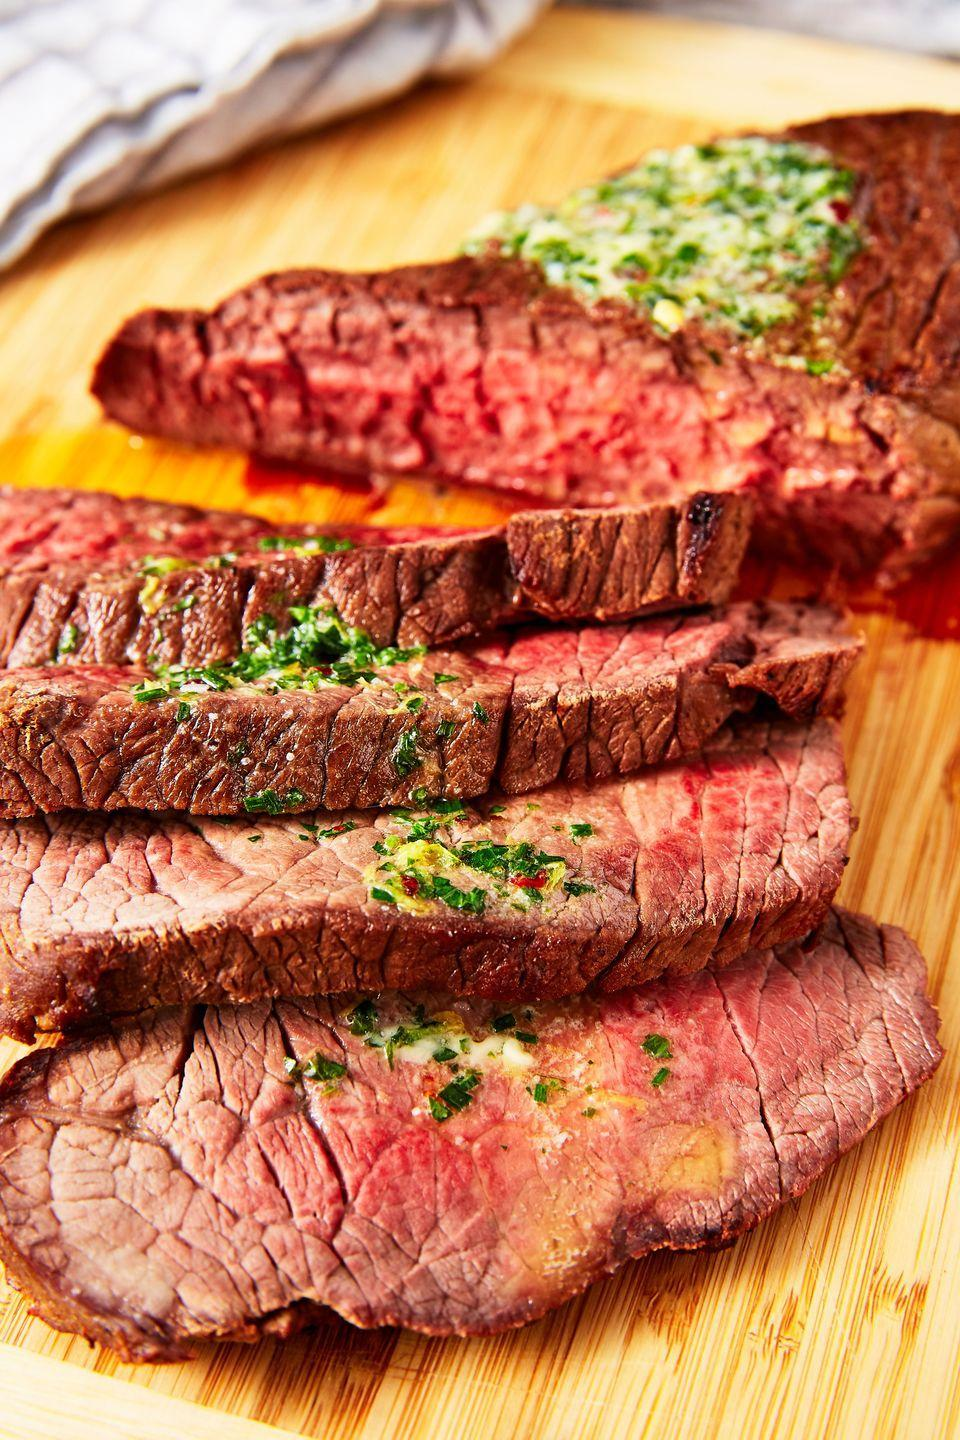 "<p>This old-school cooking technique is our new favorite. </p><p>Get the recipe from <a href=""https://www.delish.com/cooking/recipe-ideas/a25621332/london-broil-recipe/"" rel=""nofollow noopener"" target=""_blank"" data-ylk=""slk:Delish"" class=""link rapid-noclick-resp"">Delish</a>. </p>"